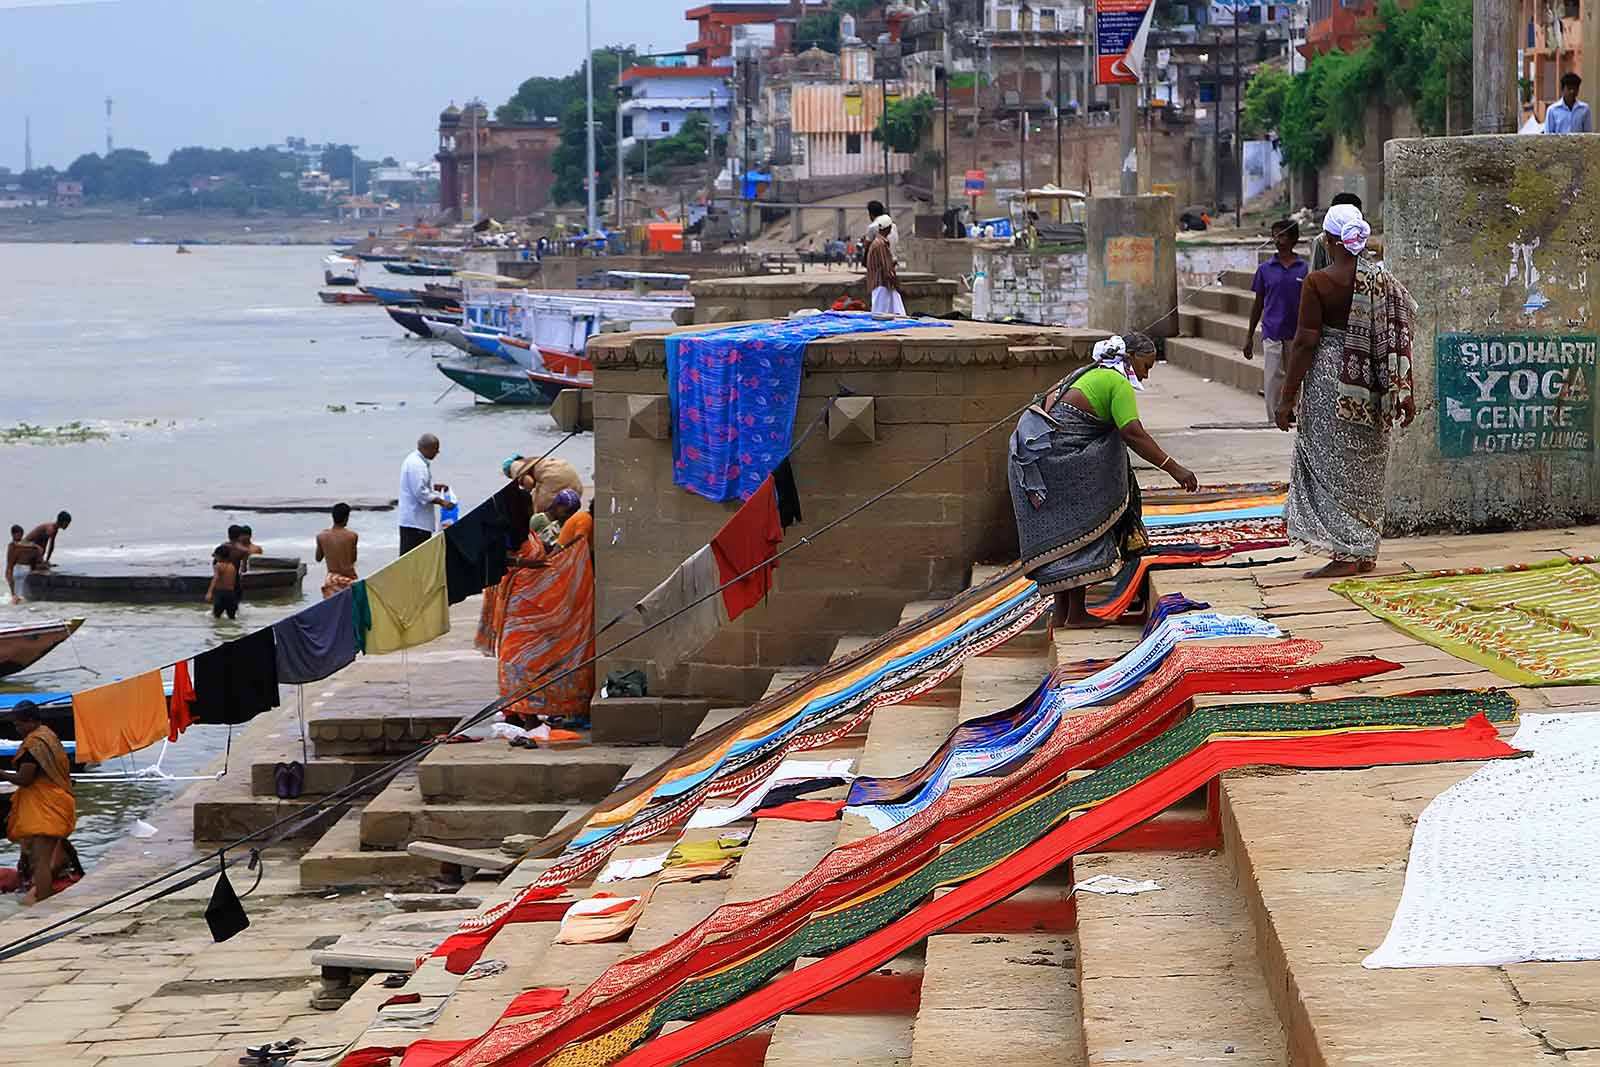 Taking a stroll along the Ghats in Varanasi, India.